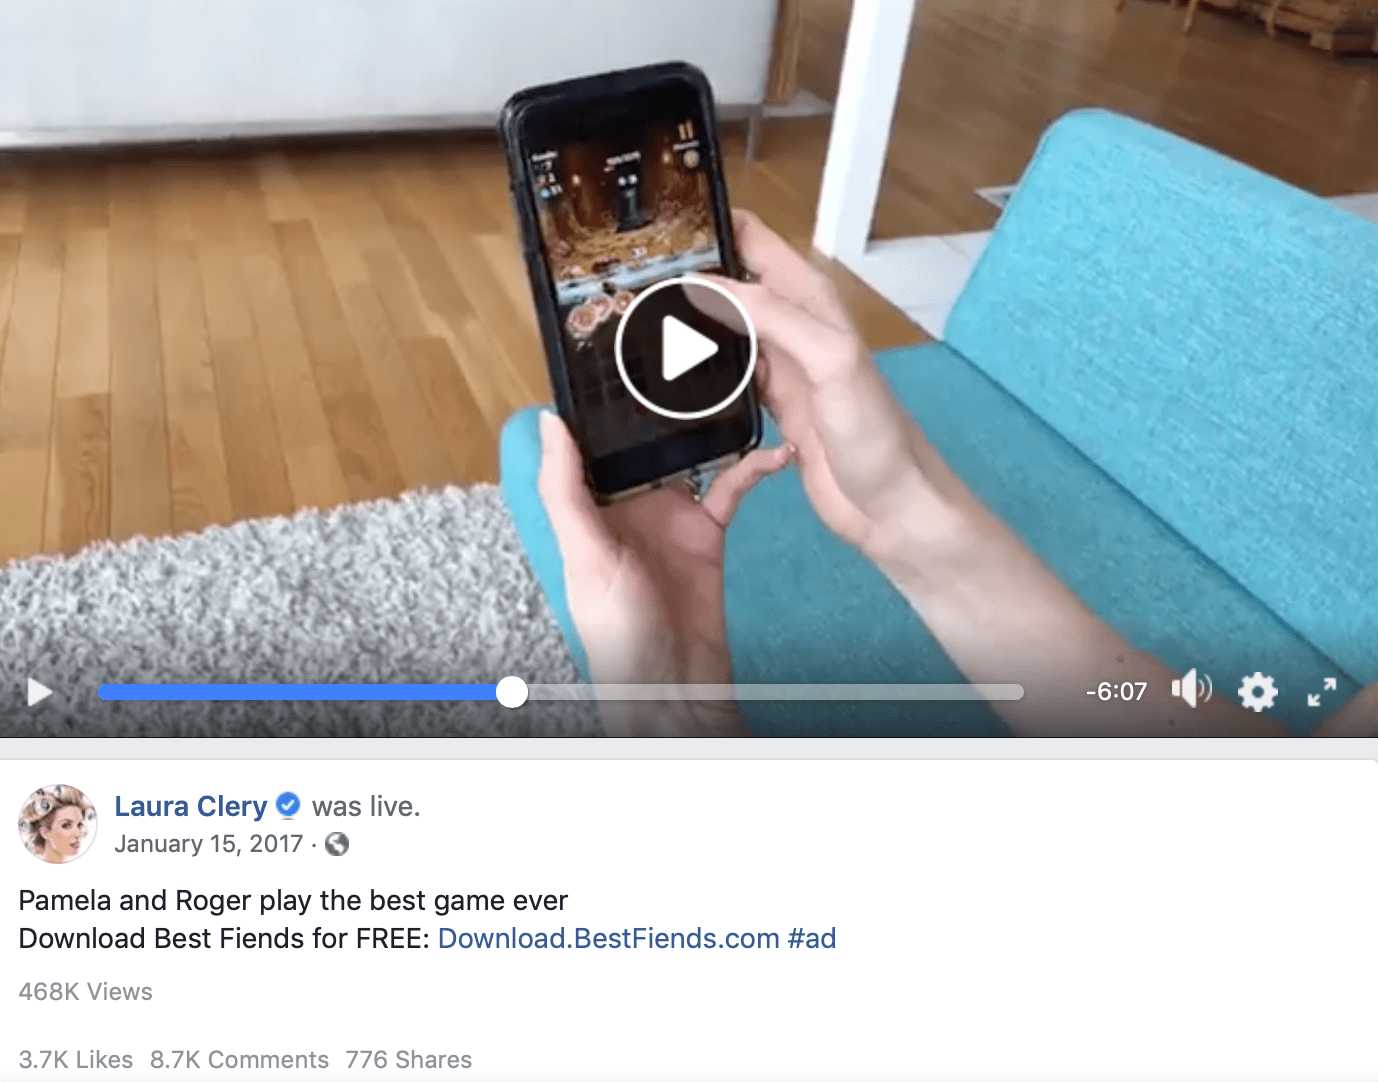 Screenshot of Facebook live video from Facebook influencer Laura Clery